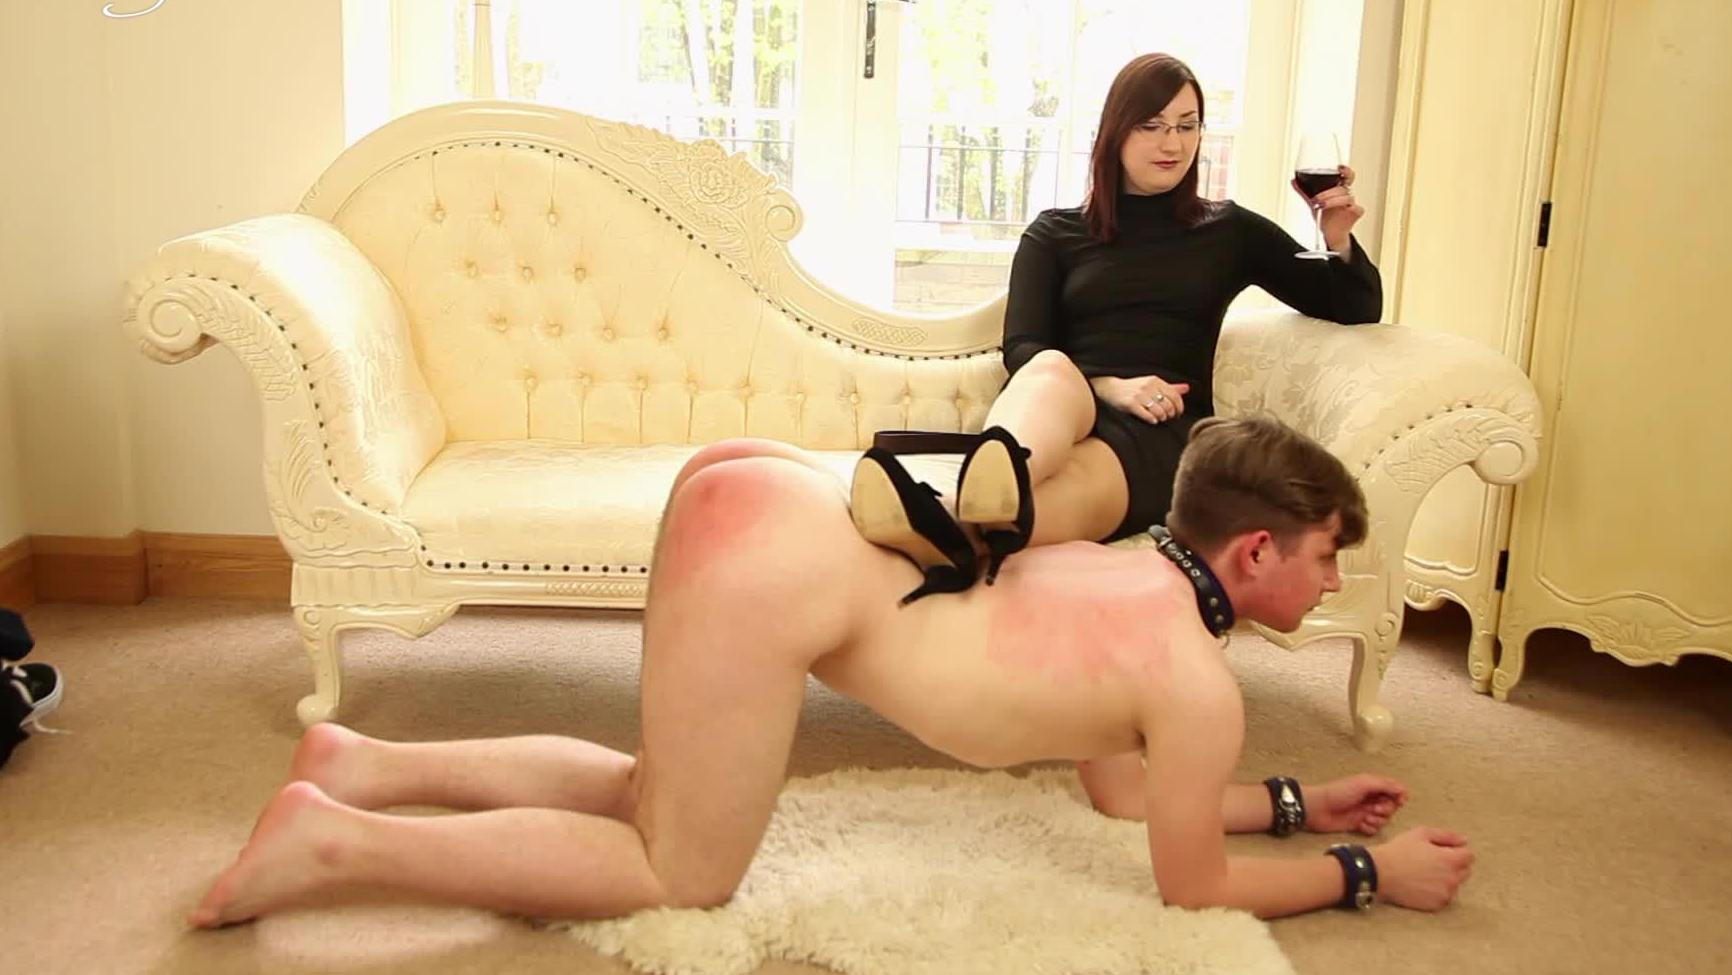 dreams-of-spanking_houseboy-film072.jpg